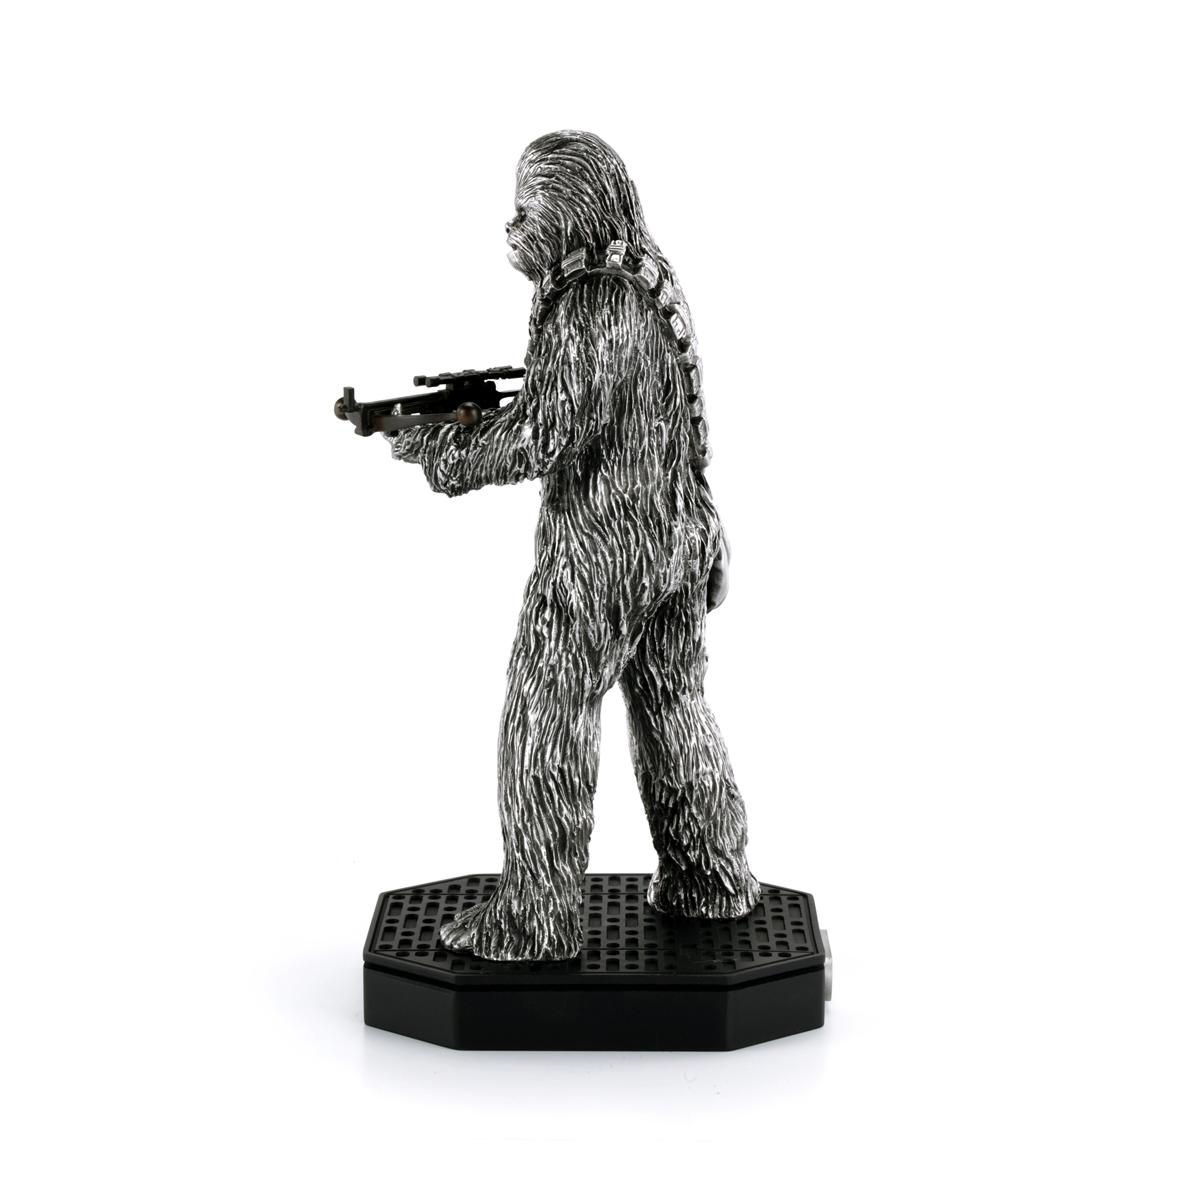 Limited Edition Chewbacca Figurine